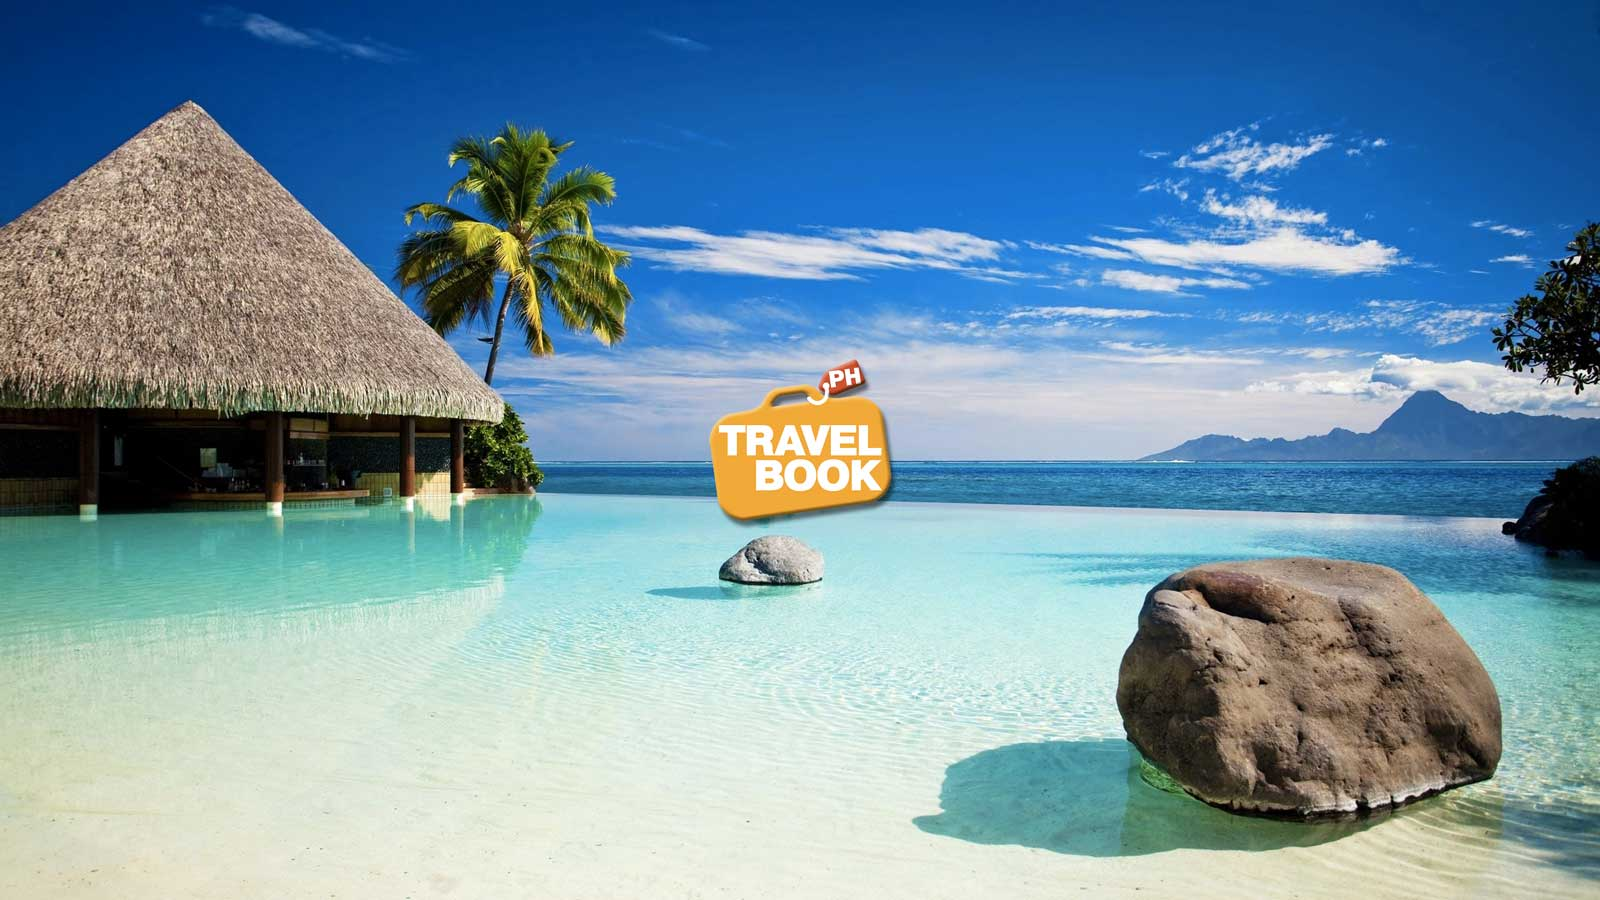 Why should you book your trips with Travelbook.ph?